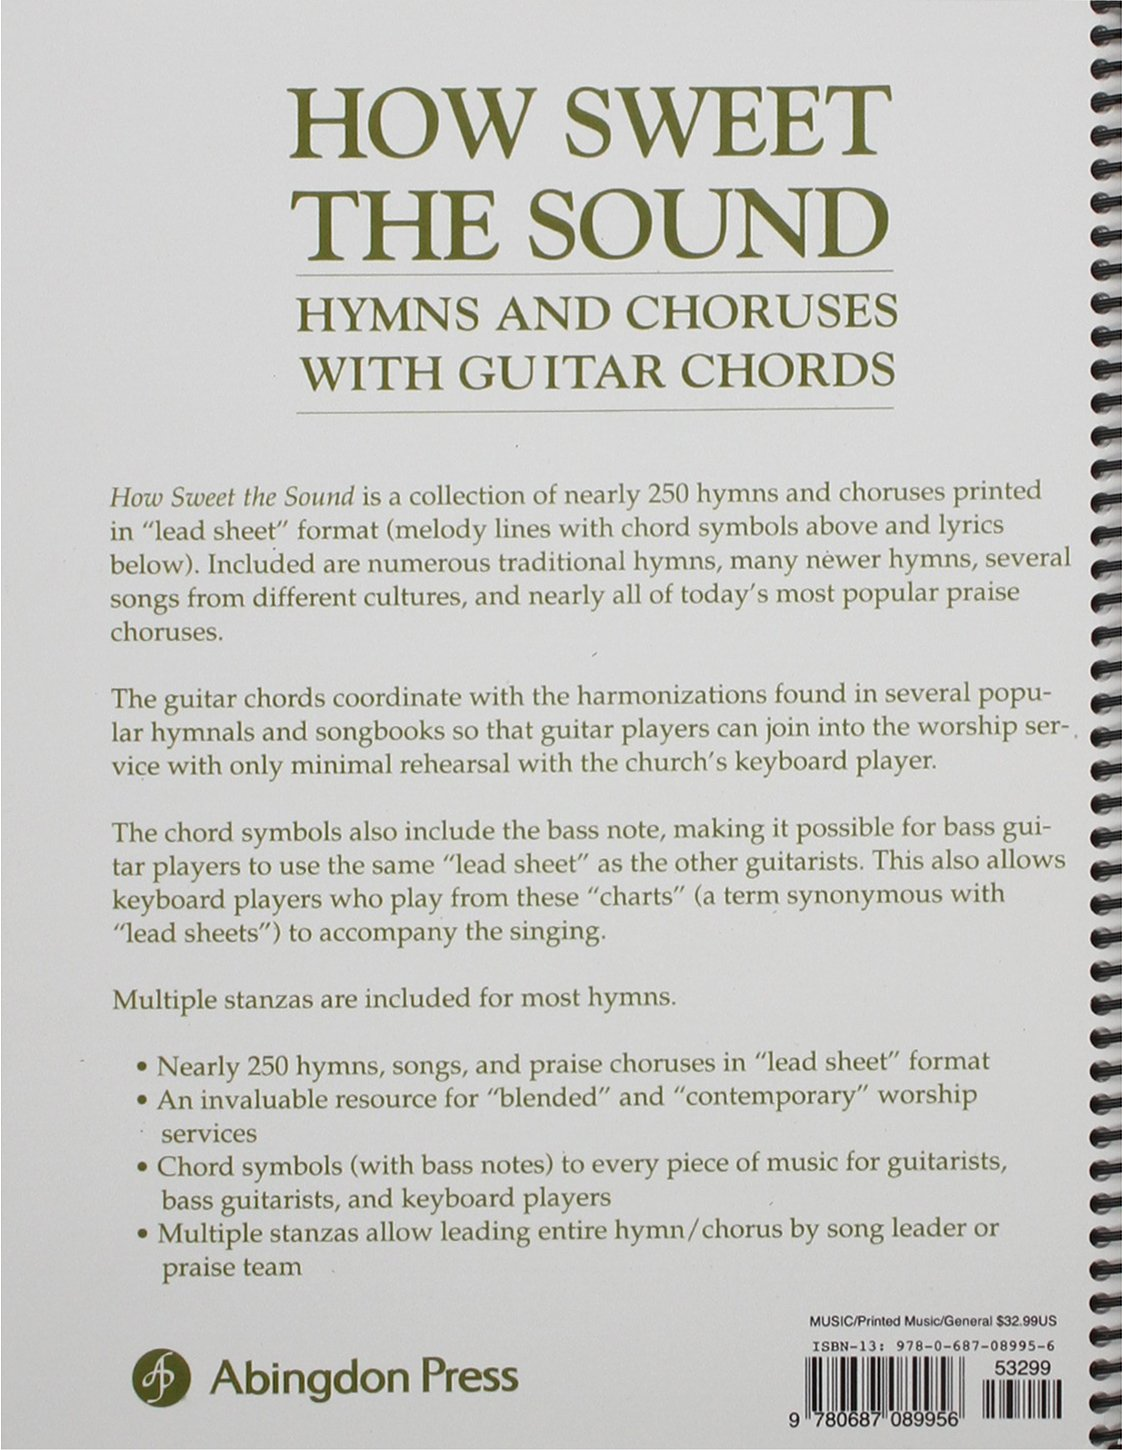 How Sweet The Sound Hymns And Choruses With Guitar Chords Abingdon